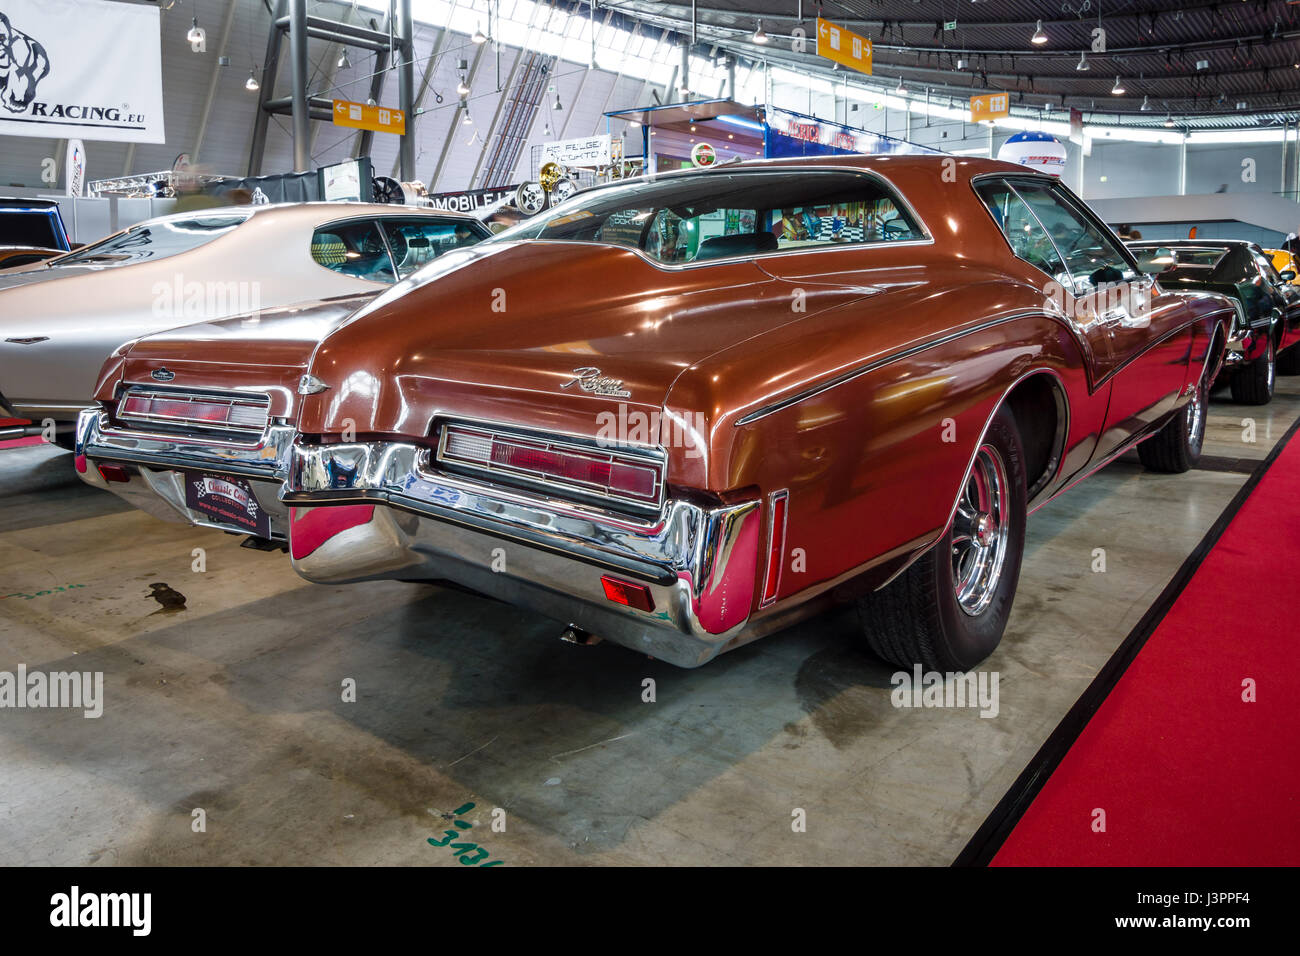 Buick Car Back Stock Photos Images Alamy 1950s And 1960s Riviera Stuttgart Germany March 03 2017 Personal Luxury 1972